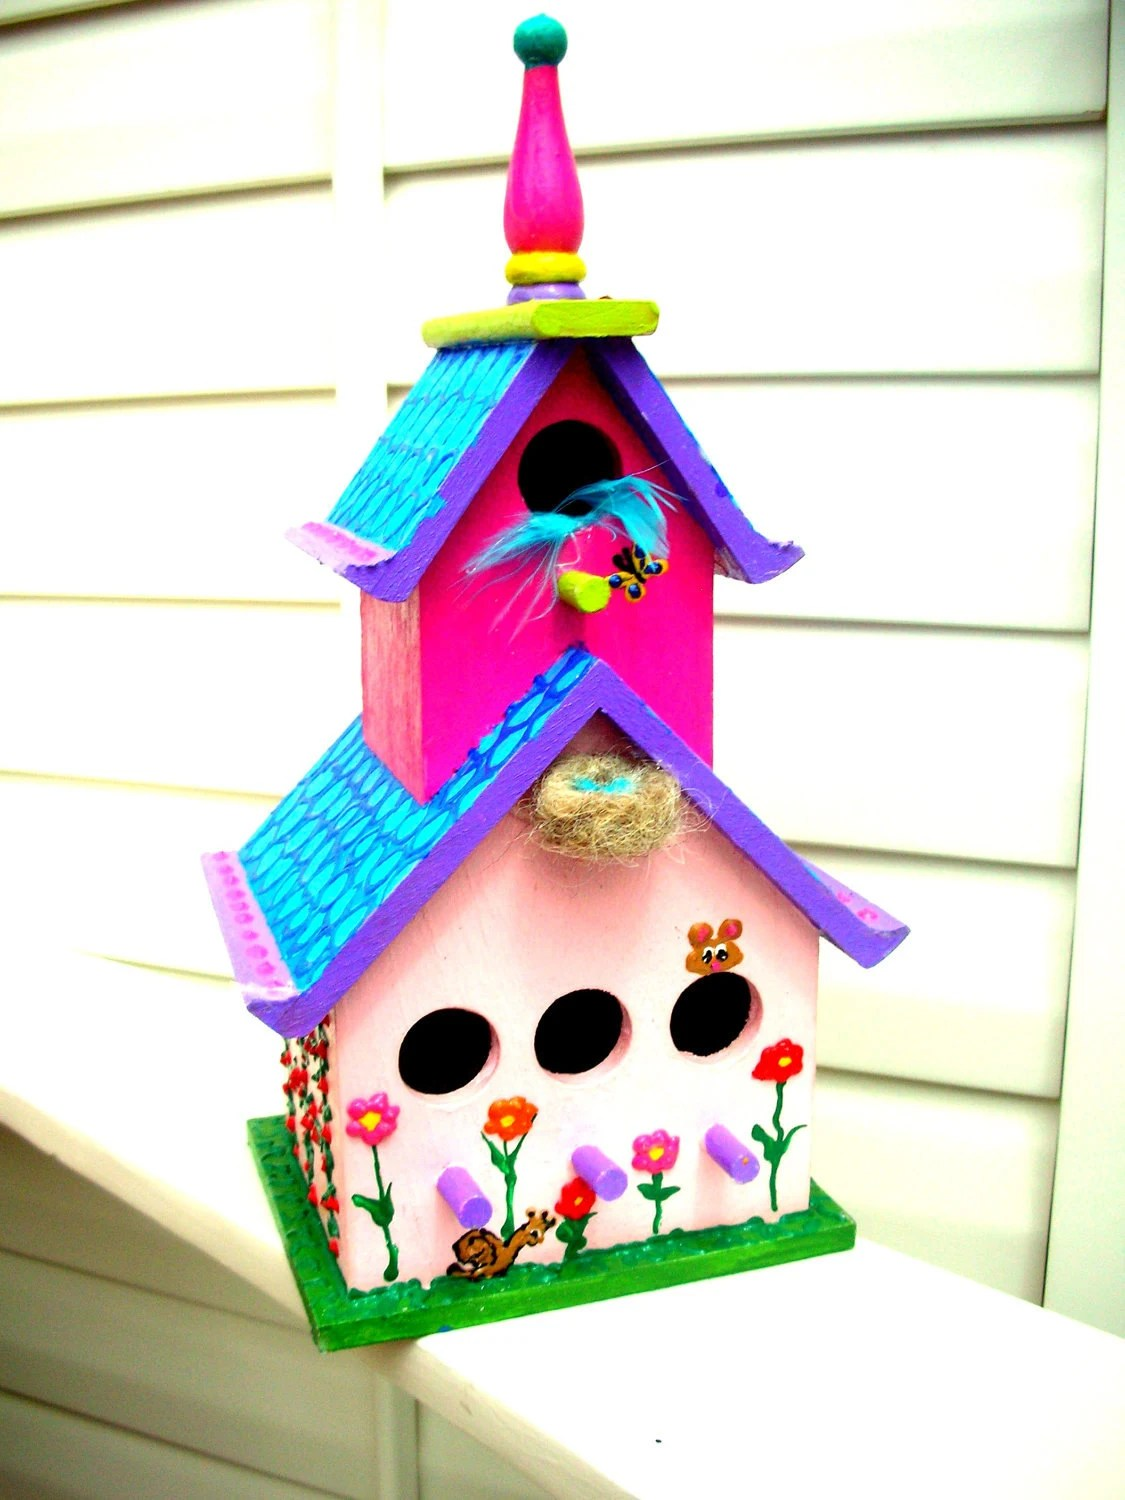 Bird nest with egss on a hand painted Bird house whimsical and happy hand